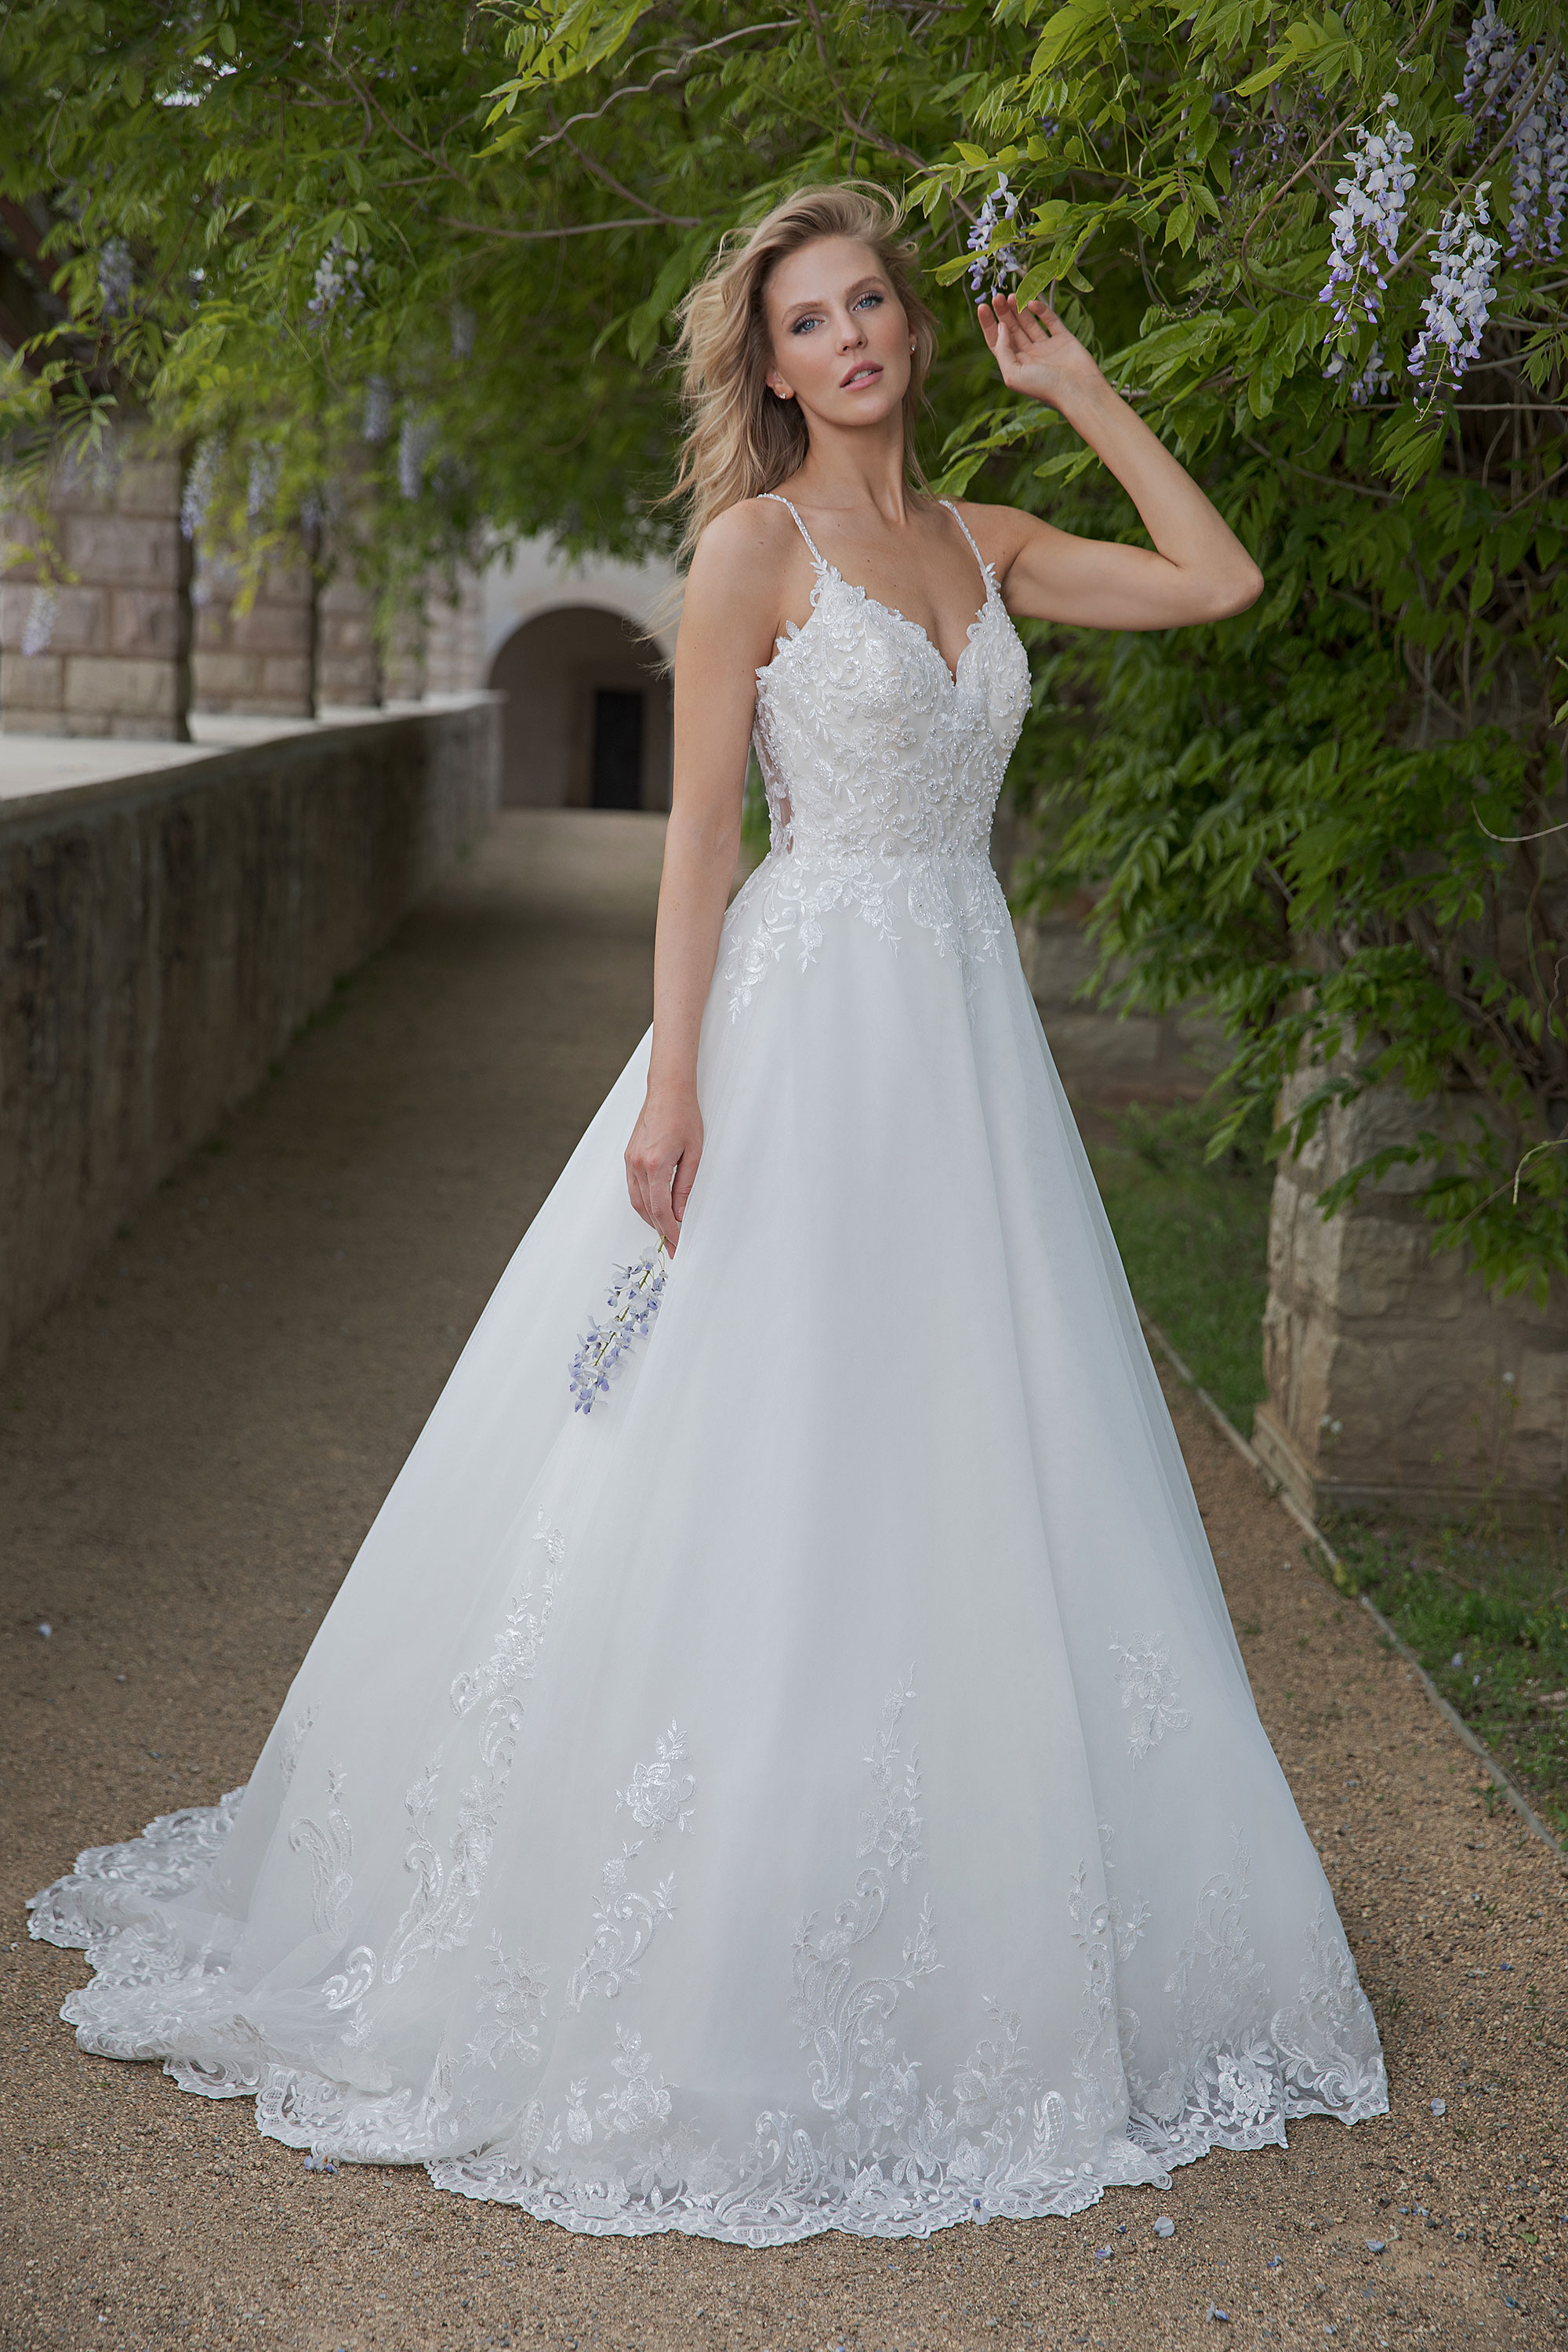 Amera Vera Brautkleid Almonda - Fashion Queen GmbH